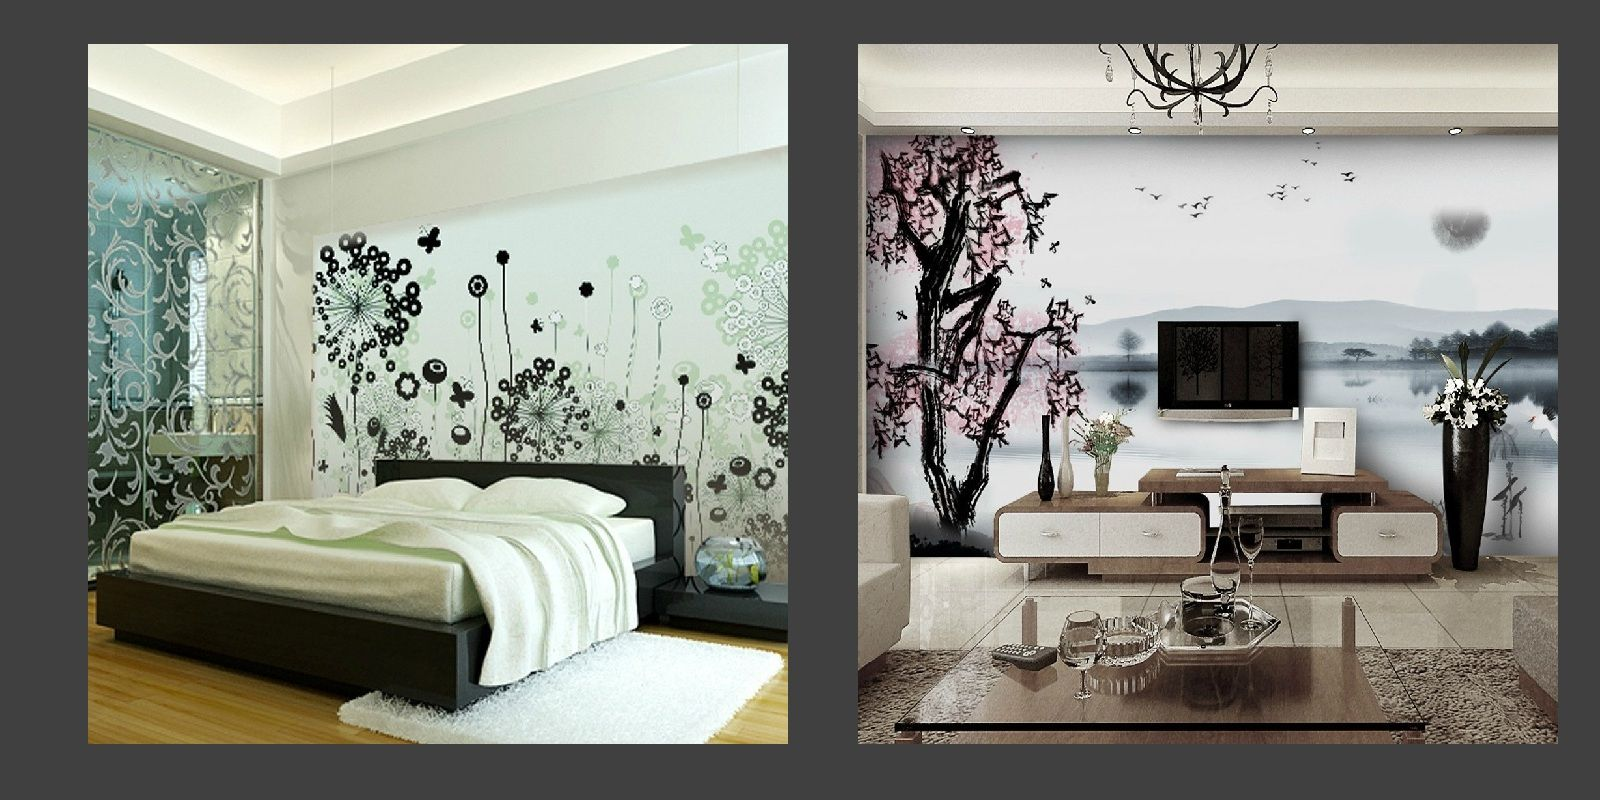 Home wallpaper design patterns home wallpaper designs for Interior wallpaper designs india